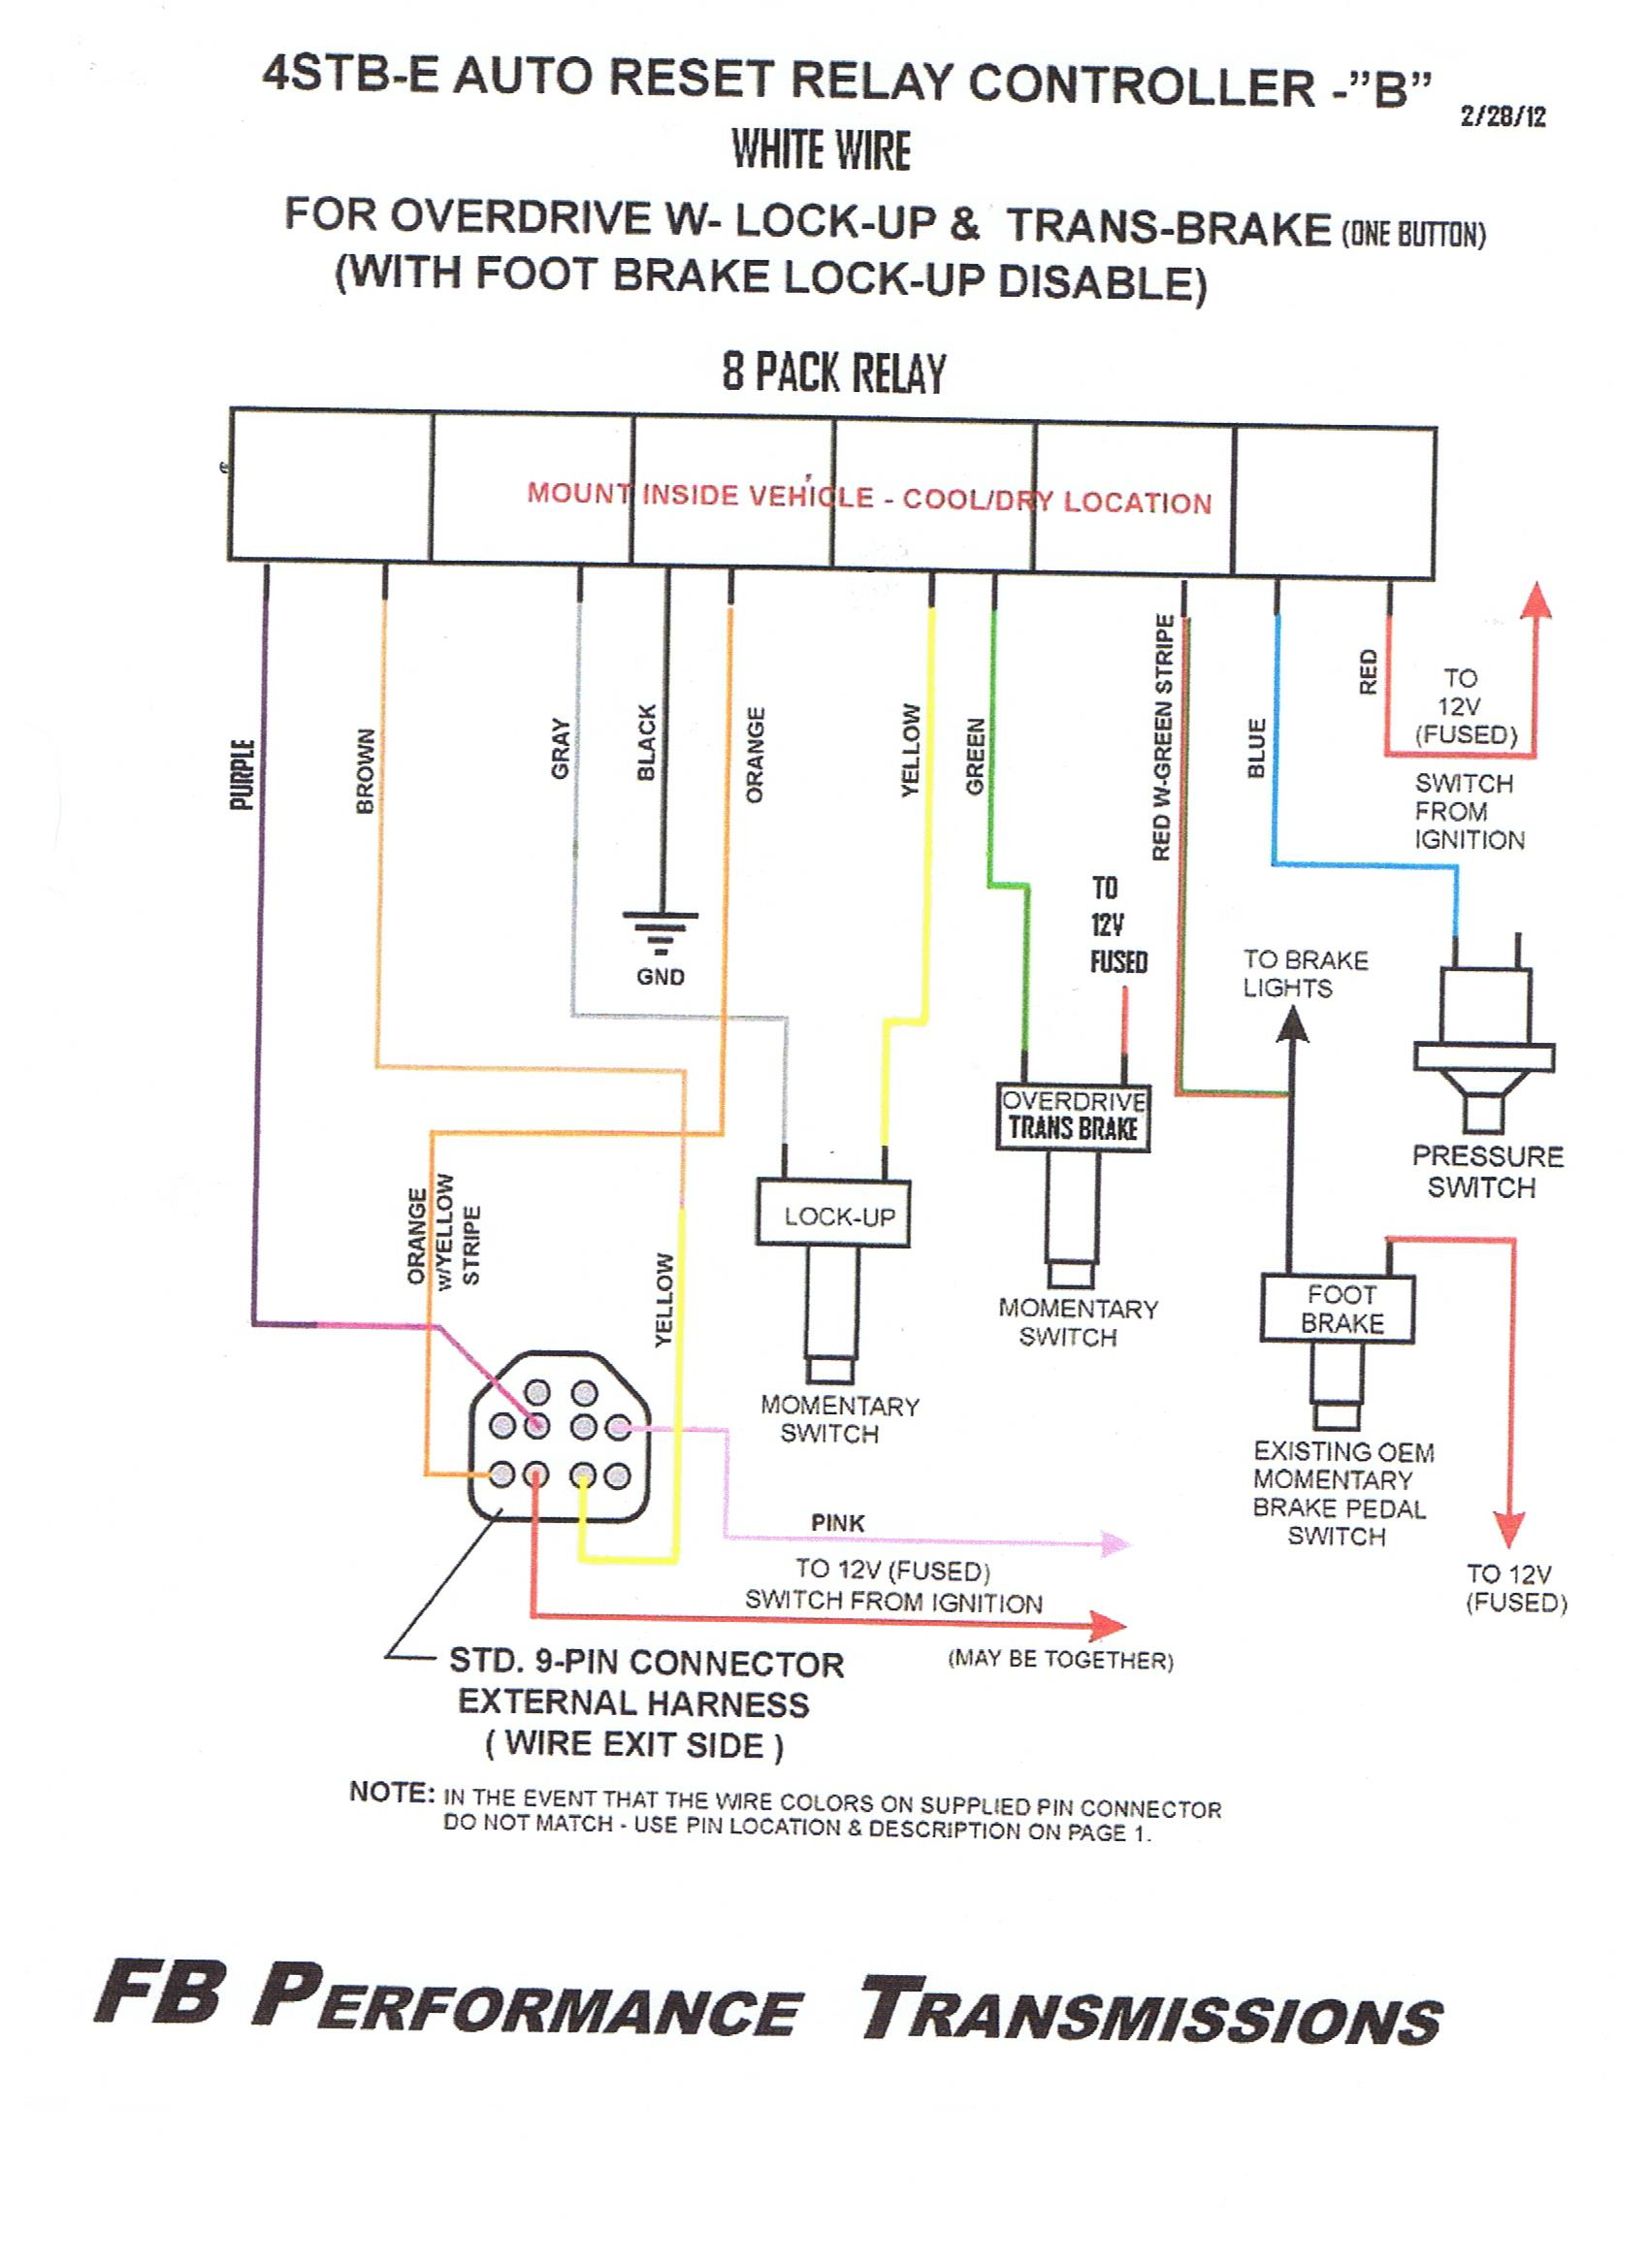 ford bronco tail light wiring diagram #11 Ford F-250 Tail Light Wiring Diagram ford bronco tail light wiring diagram